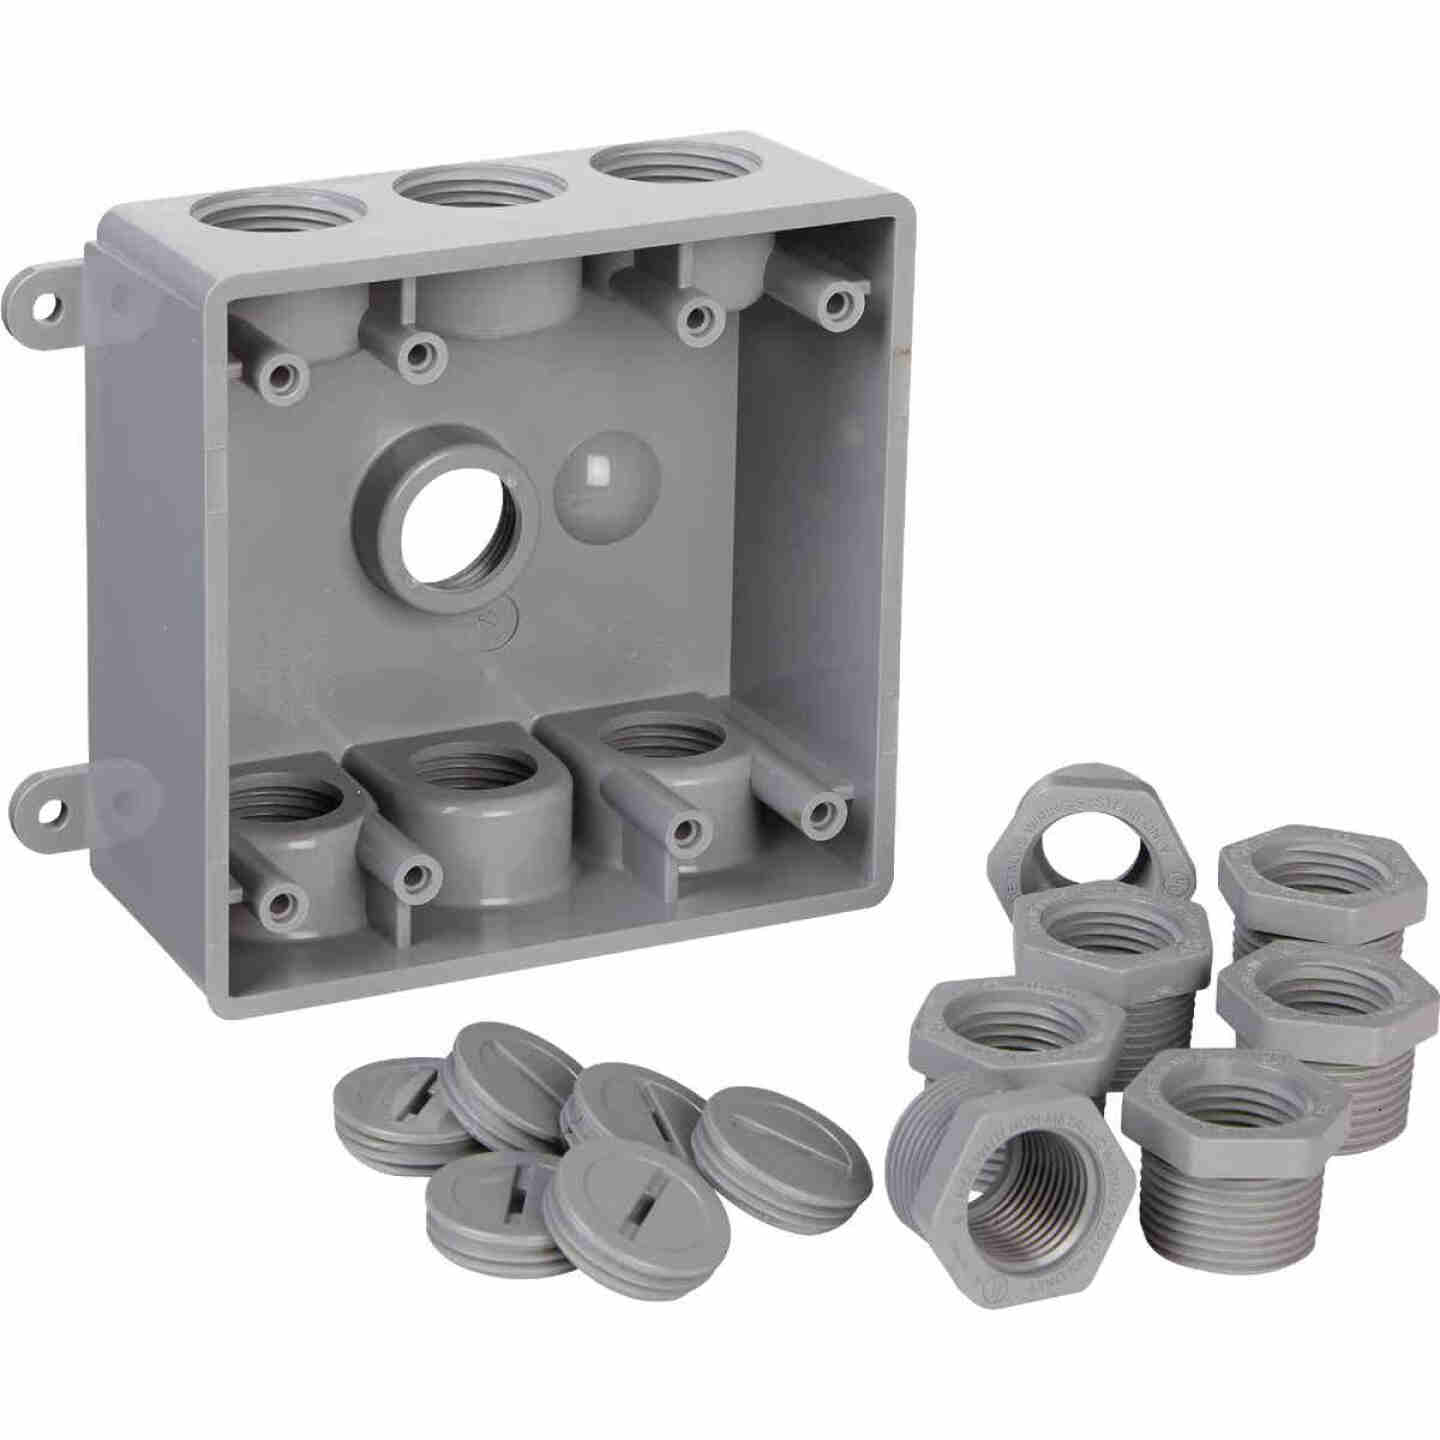 Bell 2-Gang 1/2 In.,3/4 In. 7-Outlet Gray PVC Weatherproof Outdoor Outlet Box Image 3